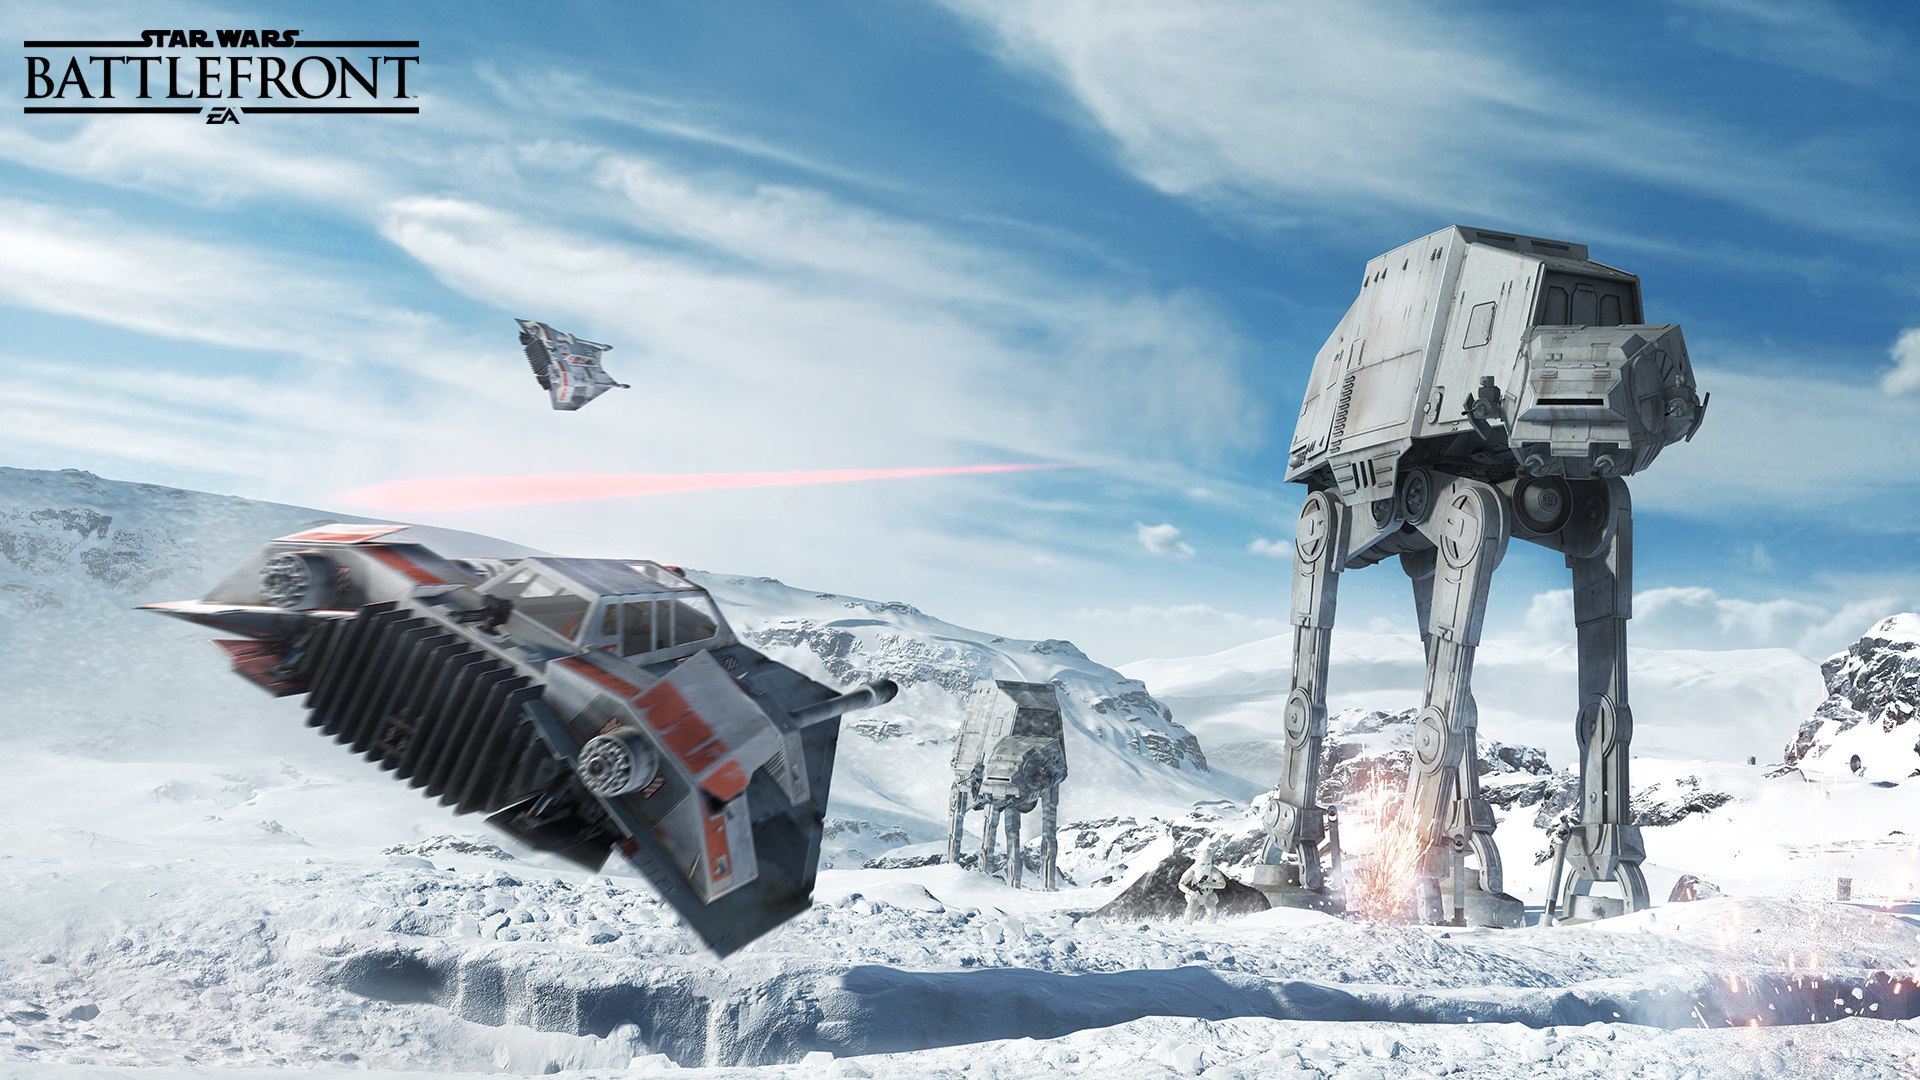 Free Download Star Wars Battlefront At At Wallpapers Hd Wallpapers 1920x1080 For Your Desktop Mobile Tablet Explore 49 Uhd Star Wars Wallpaper Hd Star Wars Wallpapers 1080p Star Wars